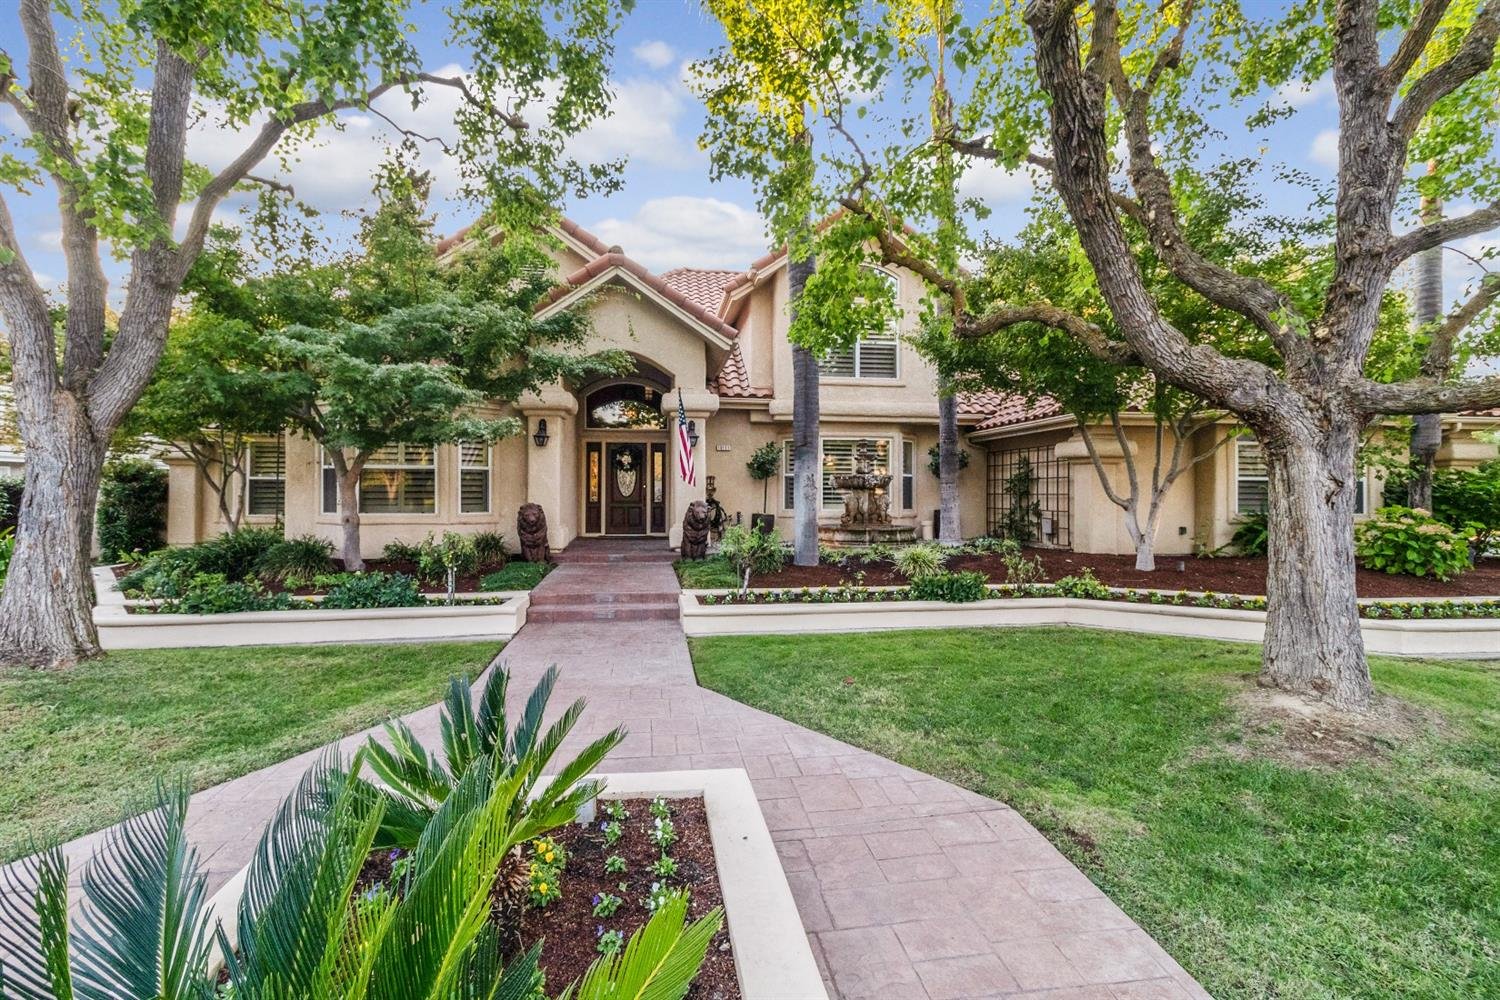 Stunning custom home in Ft. Washington's Country Club Estates.This beautiful home sits on a lg corner lot of mature landscaping & features a 3 car garage. Walking up the entry you are greeted w/a beautiful 3 tiered stone fountain. Many custom touches are throughout every room of the home. Beautiful built-ins, moldings, stone work, iron railing, ceiling fans, surround sound & refinished cabinetry. Downstairs features a private library, 2 of the 3 brs, including the master suite with sitting area, his/hers closets w/ organizers. The entry leads you to a formal dinning, lg living room w/vaulted ceilings, gas fireplace & wet/bar w/wine fridge & built-in cabinets. Spacious kitchen features stainless steel app, custom cabinets, pantry, island w/prep sink, breakfast bar, new wood floors & eating area overlooking private backyard. Backyard features covered patio w/fans & lighting & pool w/stone waterfall perfect for entertaining. Upstairs has a lg bonus room w/built-ins, & bedroom w/bath.